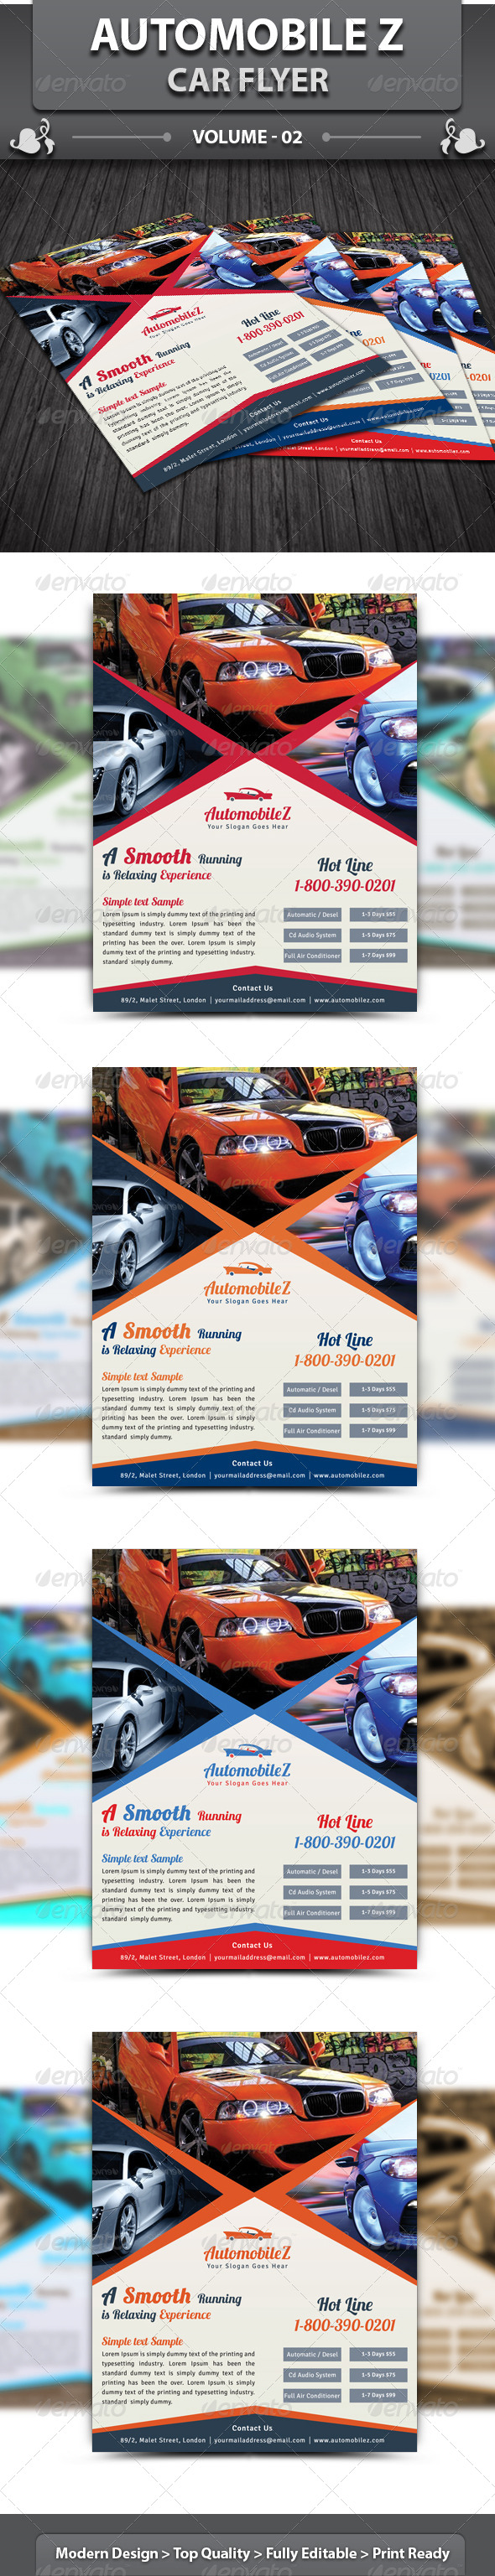 GraphicRiver AutoMobileZ Car Flyer v2 6138618